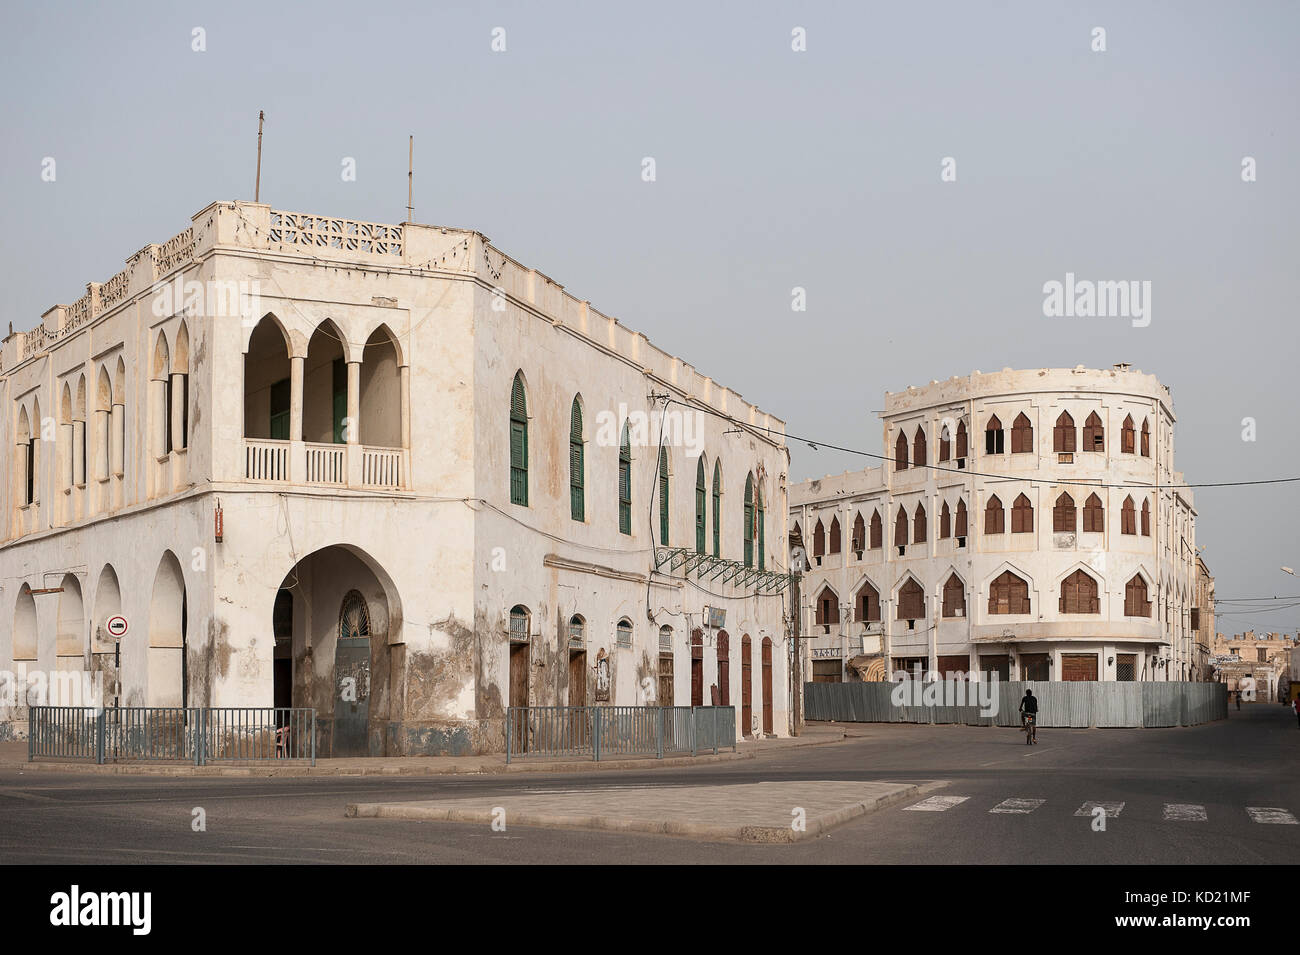 massawa stock photos massawa stock images alamy